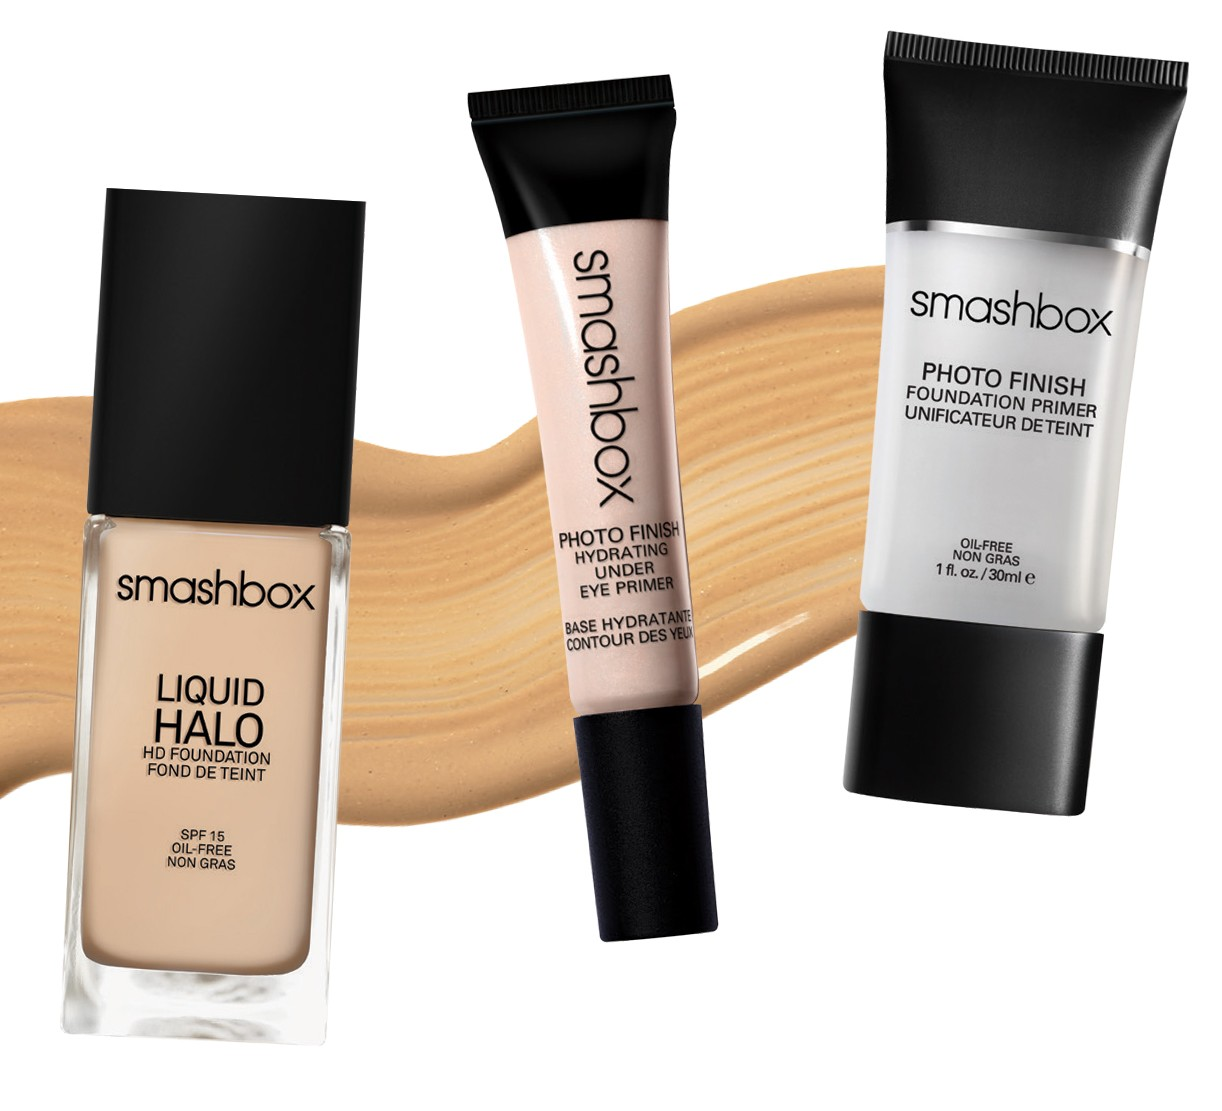 Smashbox under eye primer erfahrungen